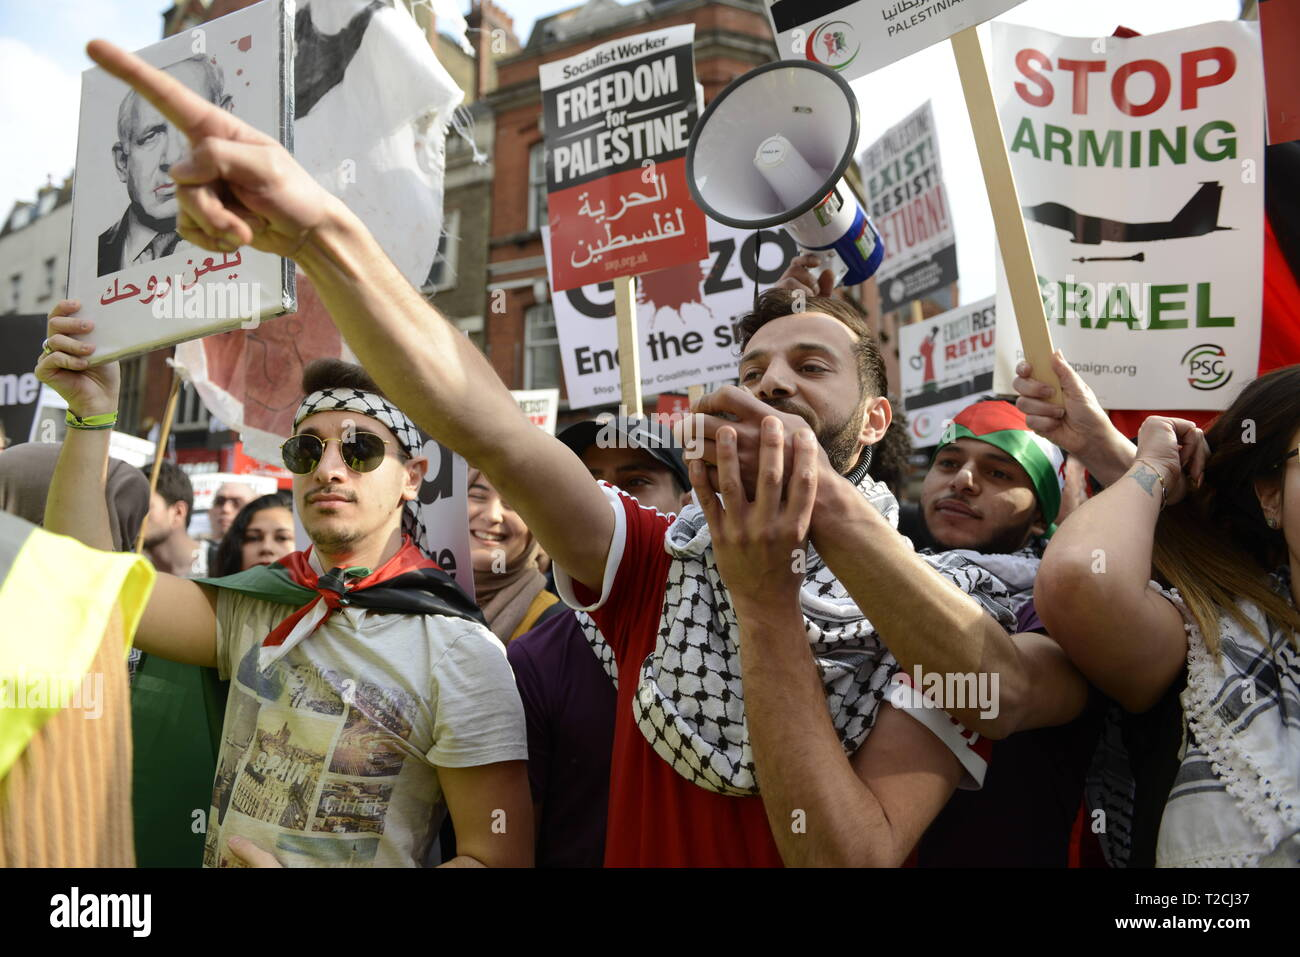 London, Greater London, UK. 30th Mar, 2019. A protester is seen shouting slogans a megaphone during the Exist, Resist, Return Rally for Palestine in London.People gather outside the Israeli embassy in London to demonstrate against the Israeli government, and to demand respect for Palestinians' fundamental rights to exist, resist and return. Palestinians are calling for global protests to support their right to come back to their villages. Rally was organized by Palestine Solidarity Campaign, Stop the War Coalition, Palestinian Forum in Britain, Friends of Al- Aqsa, and Muslim - Stock Image